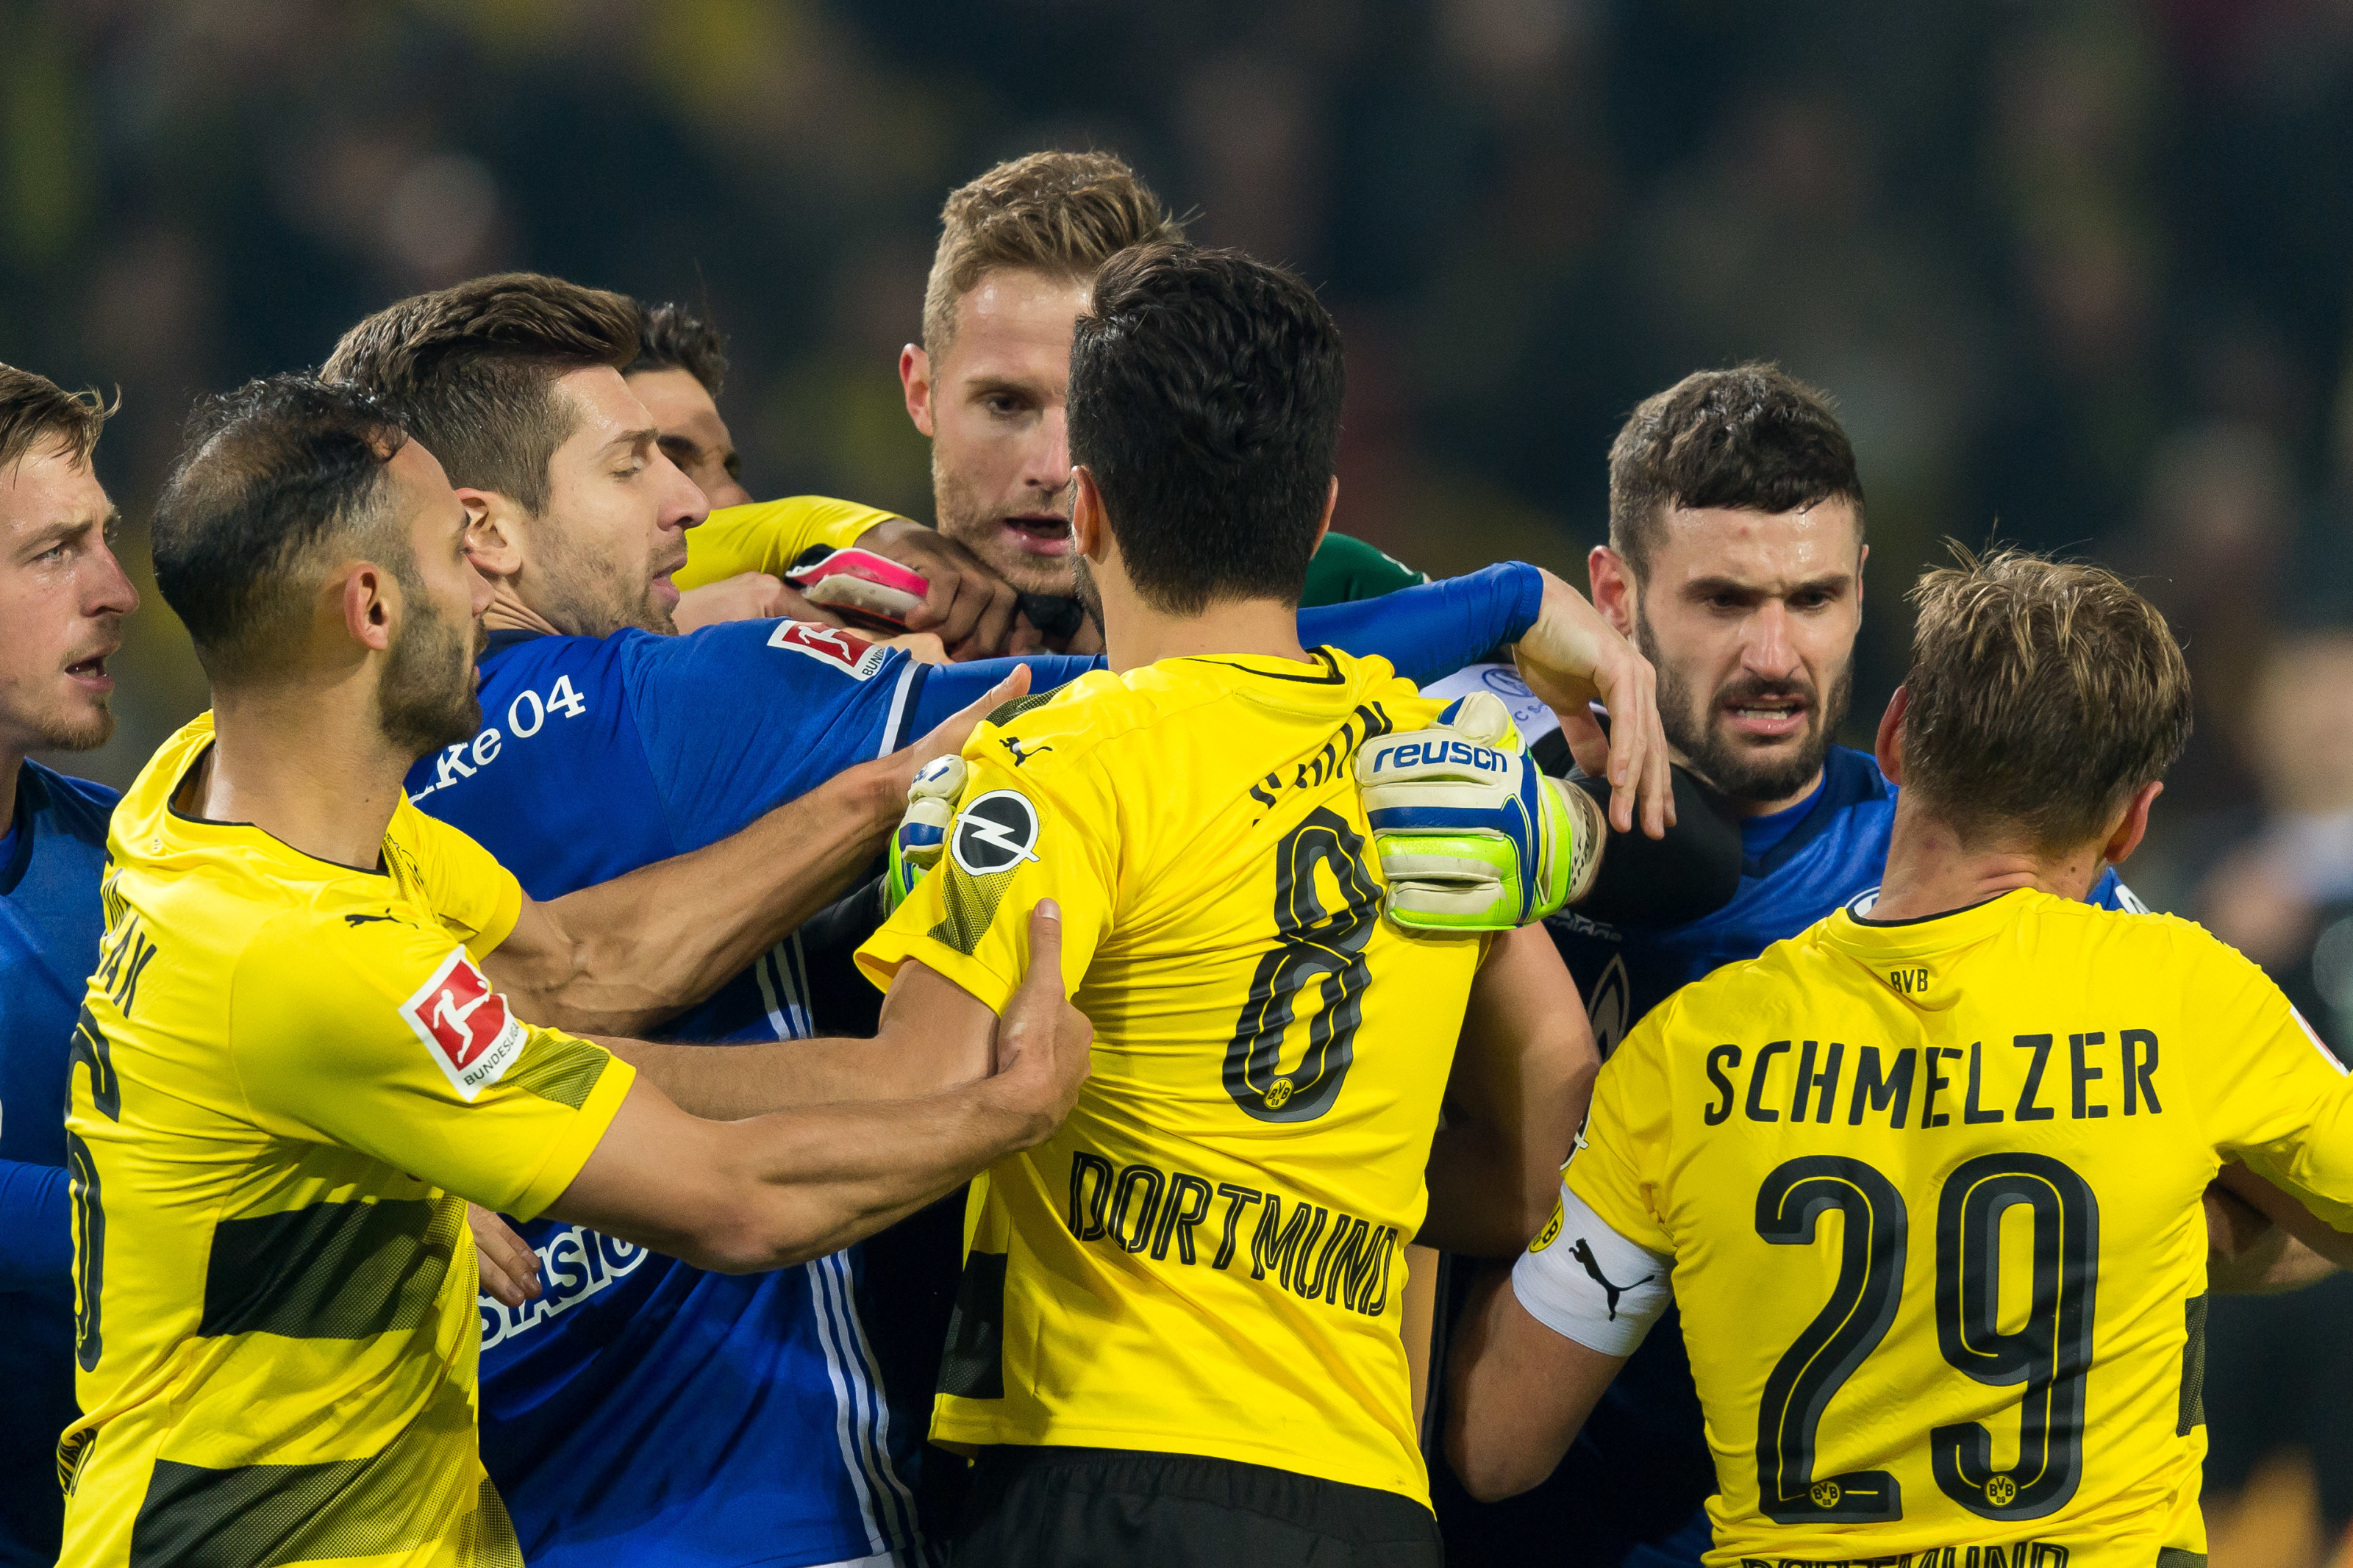 Match Preview Borussia Dortmund Face Schalke 04 In Crucial Revierderby